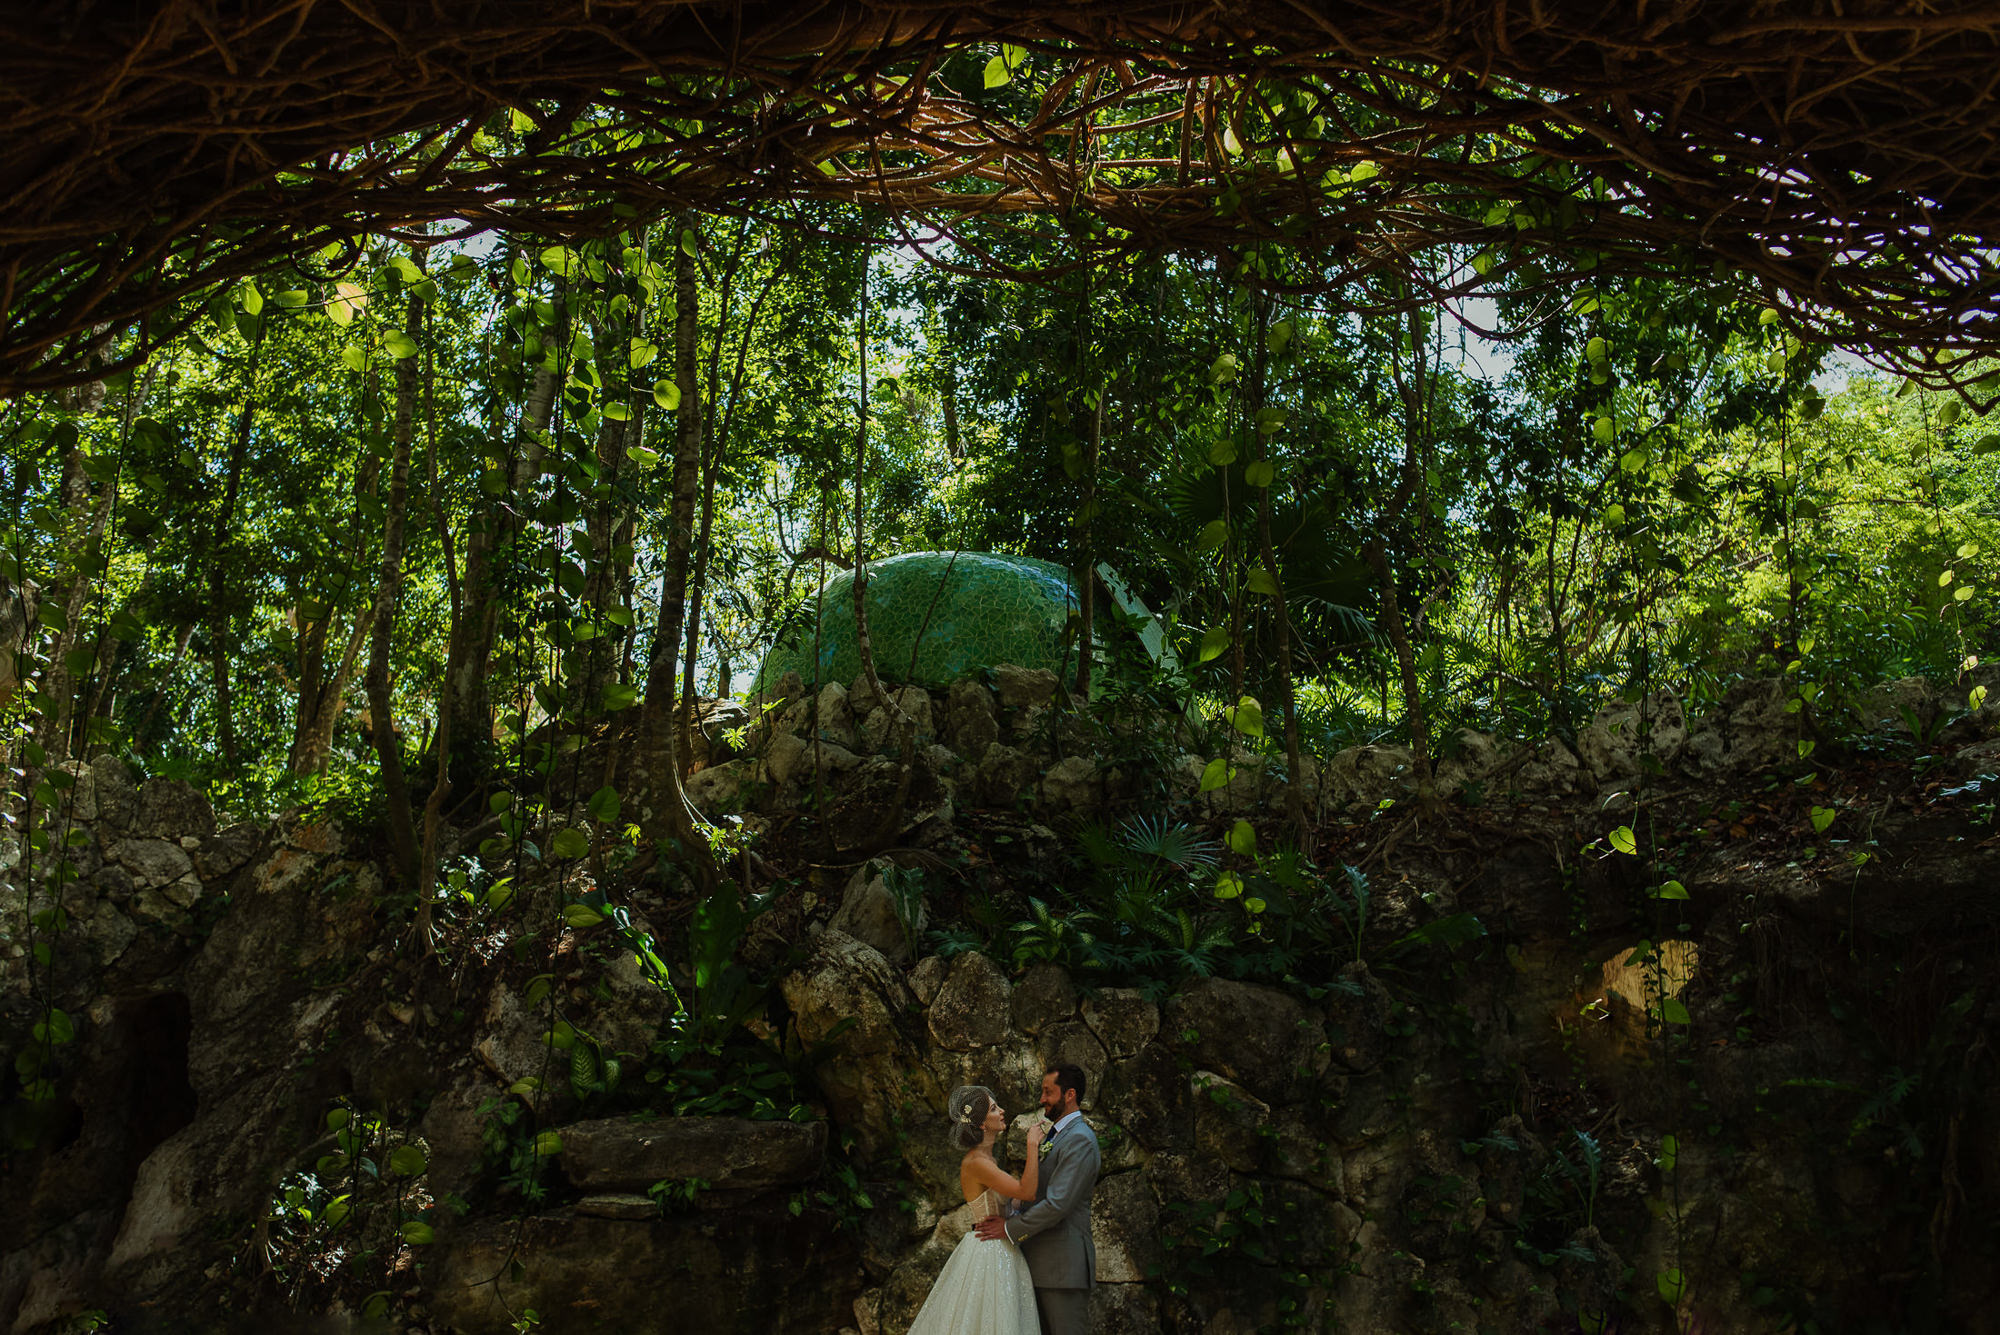 Bride and groom in cenote with lush forest around, by Citlalli Rico